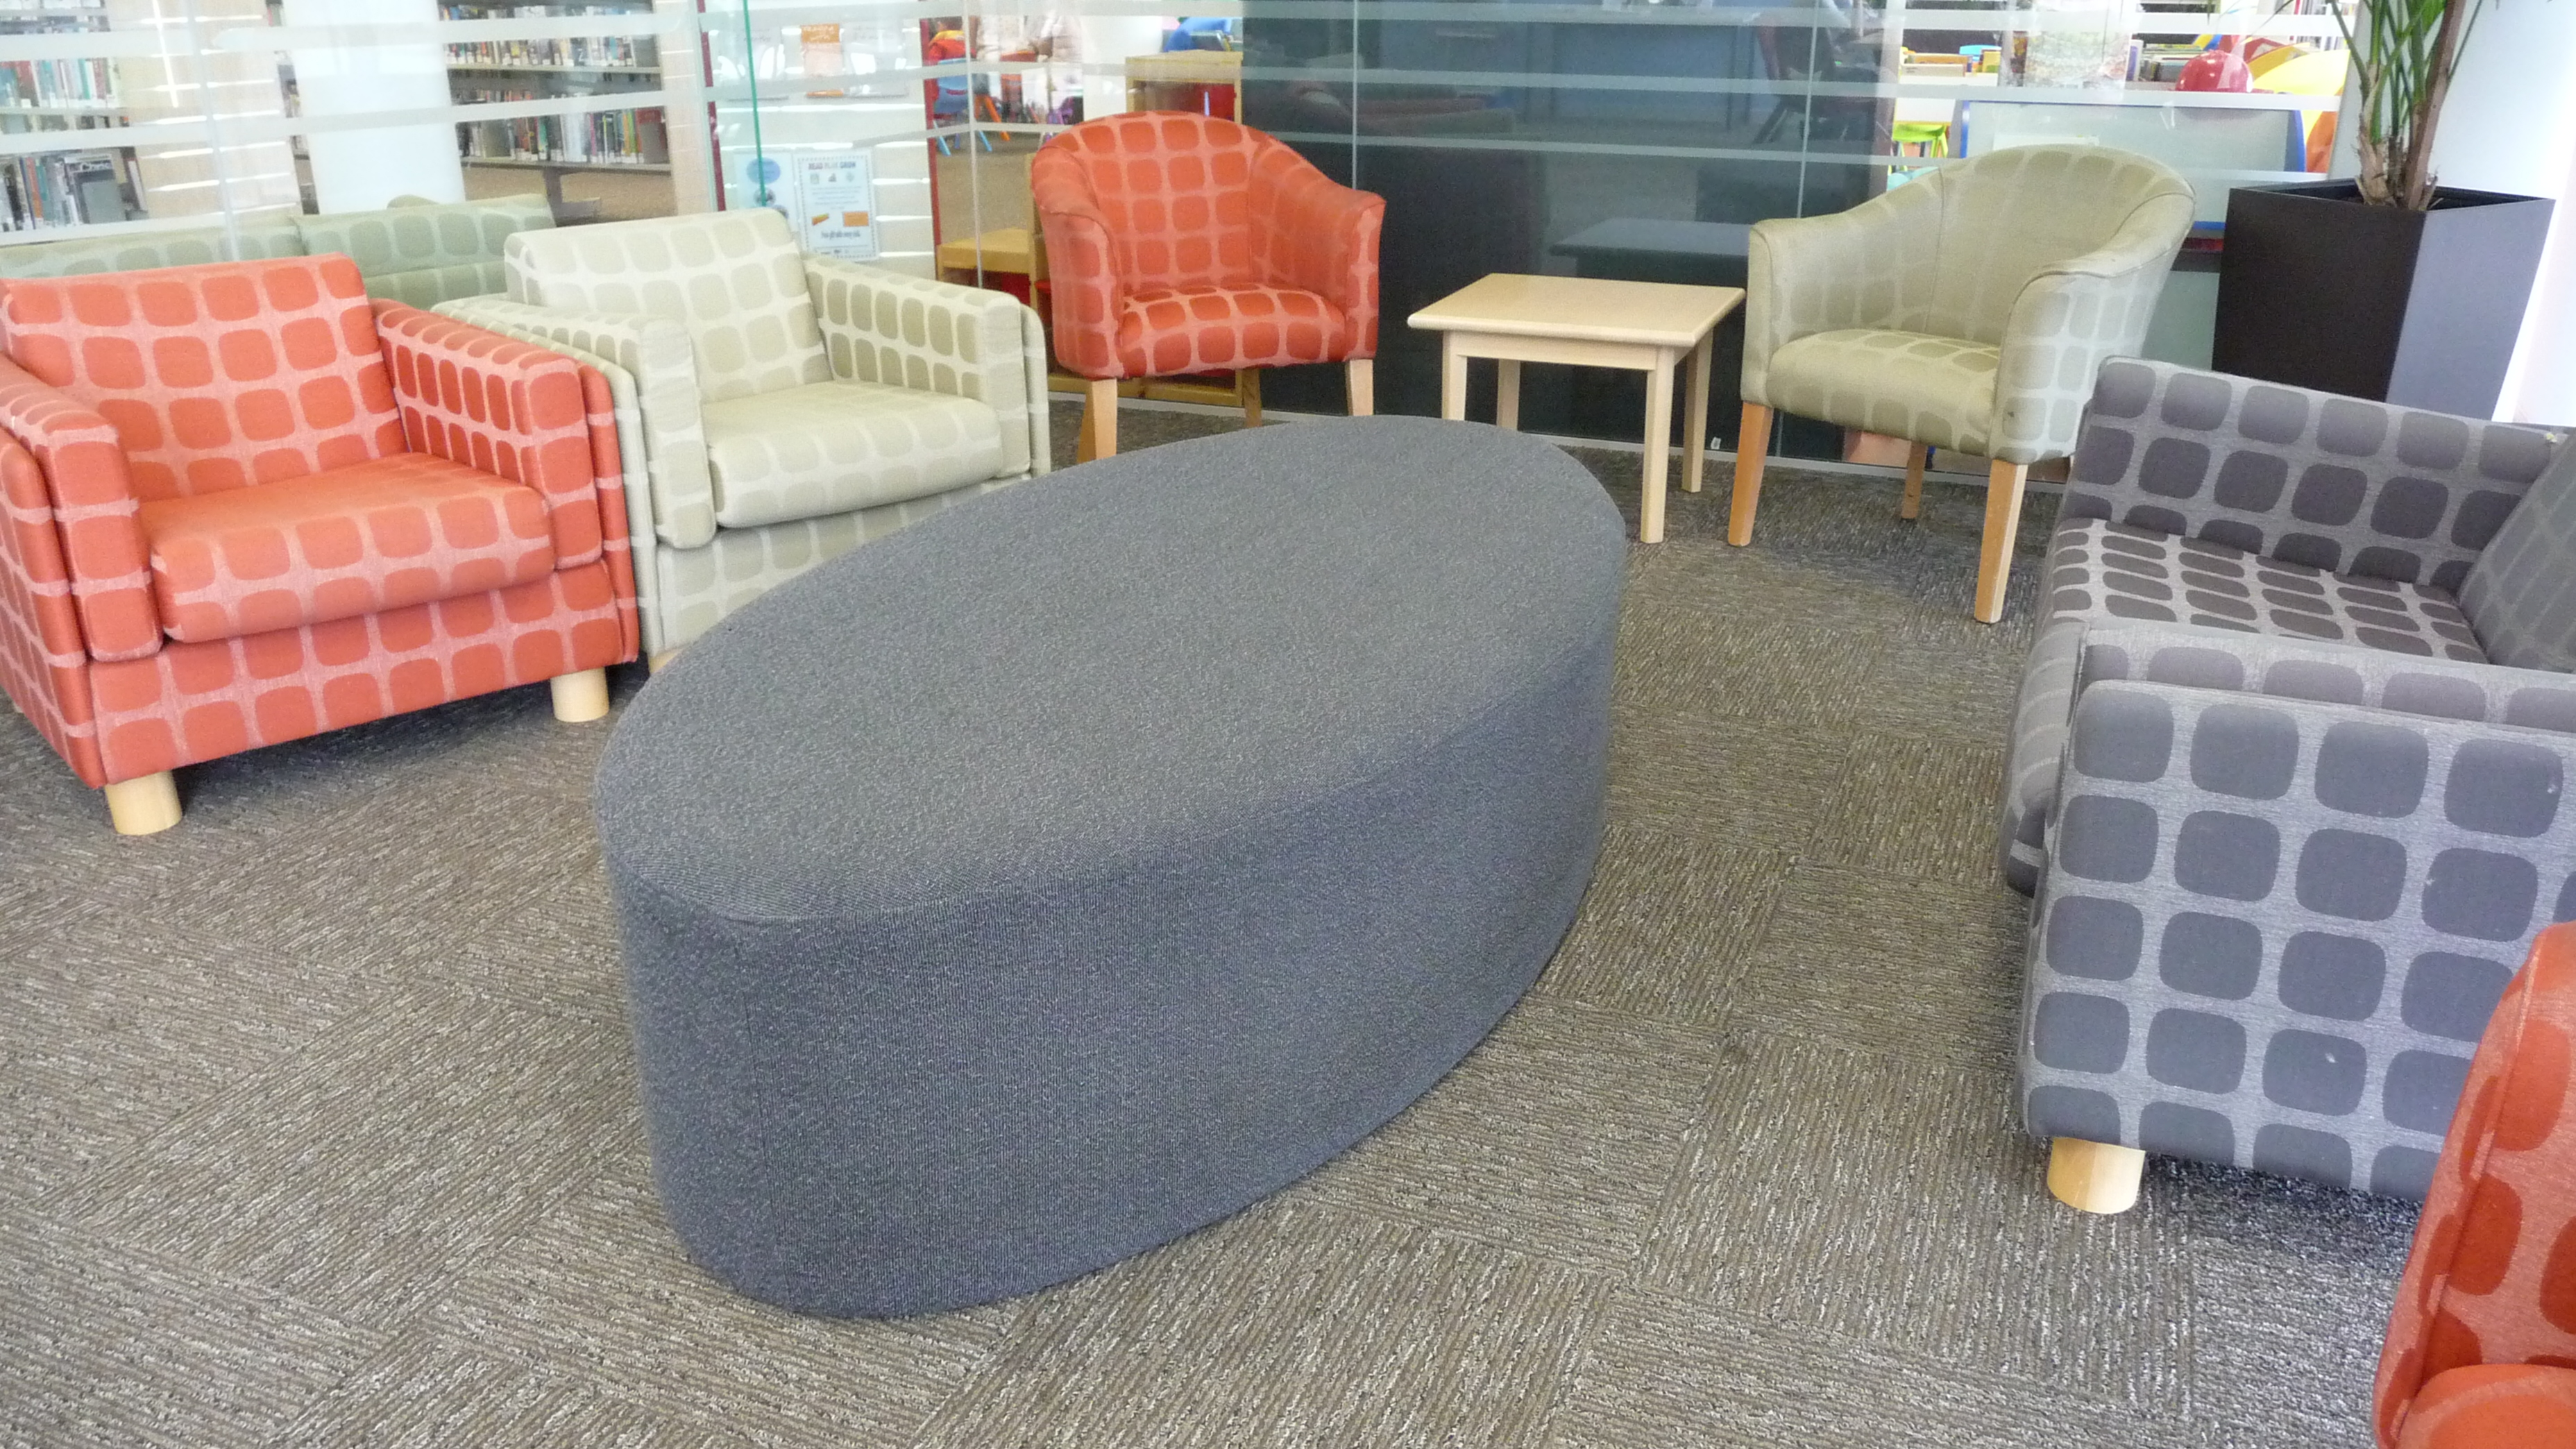 Furniture Reupholstery Quote Paramount Business Office